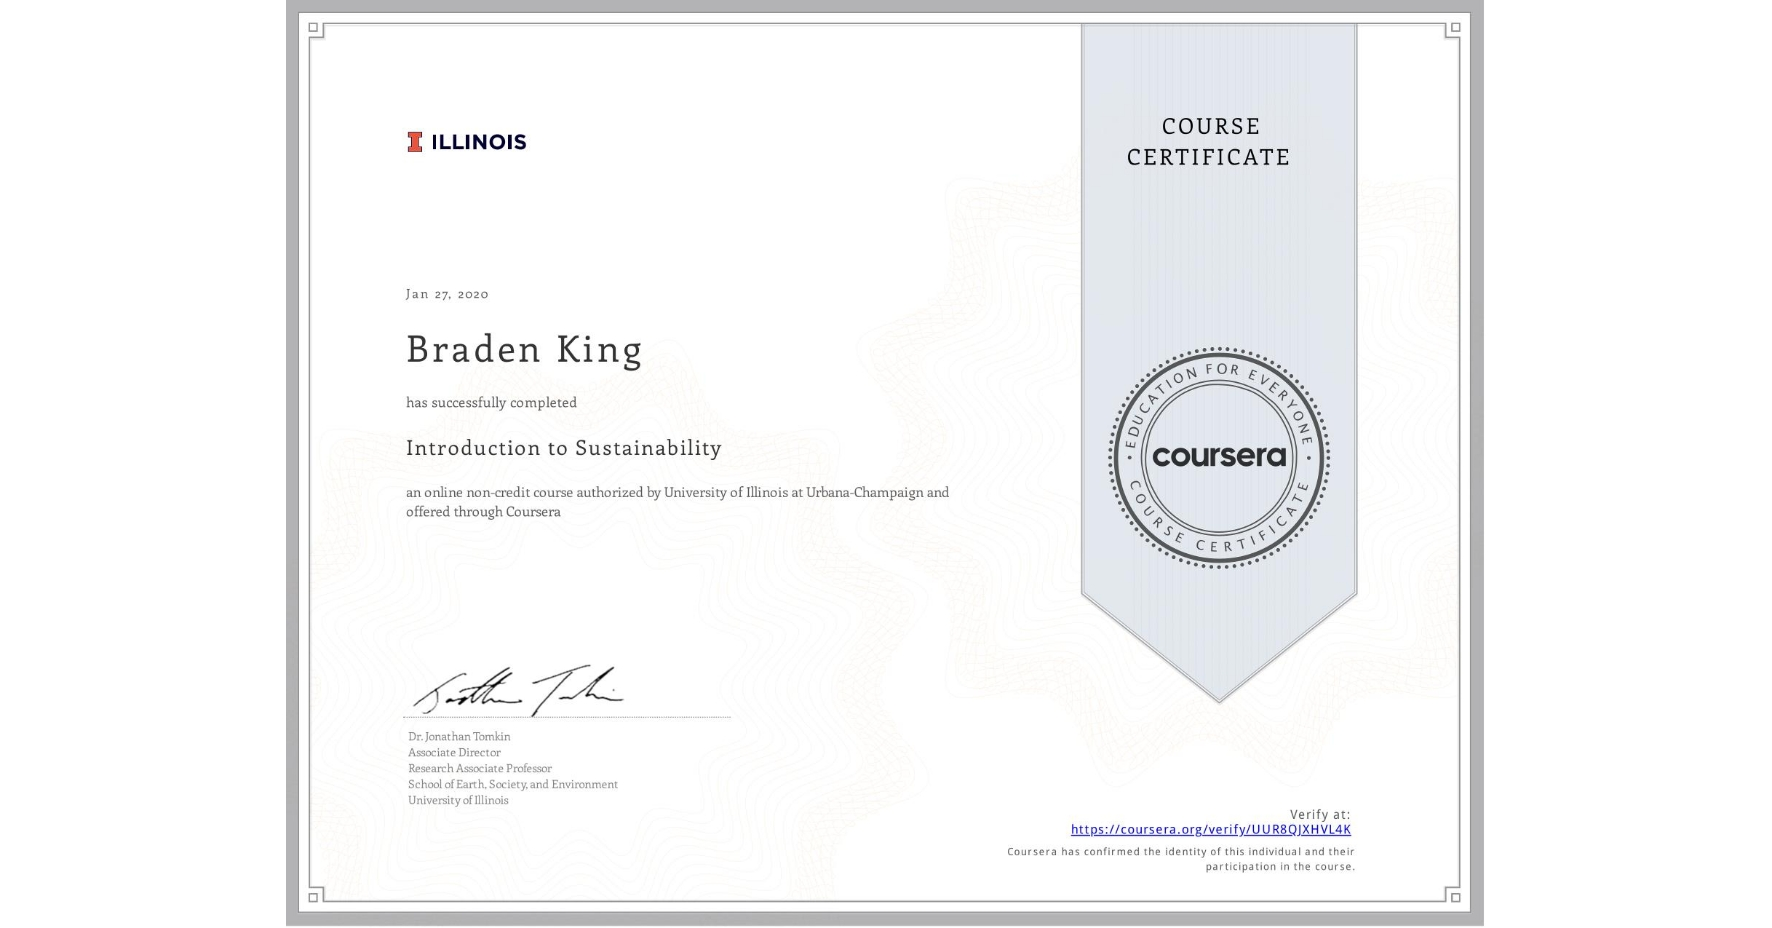 View certificate for Braden King, Introduction to Sustainability, an online non-credit course authorized by University of Illinois at Urbana-Champaign and offered through Coursera